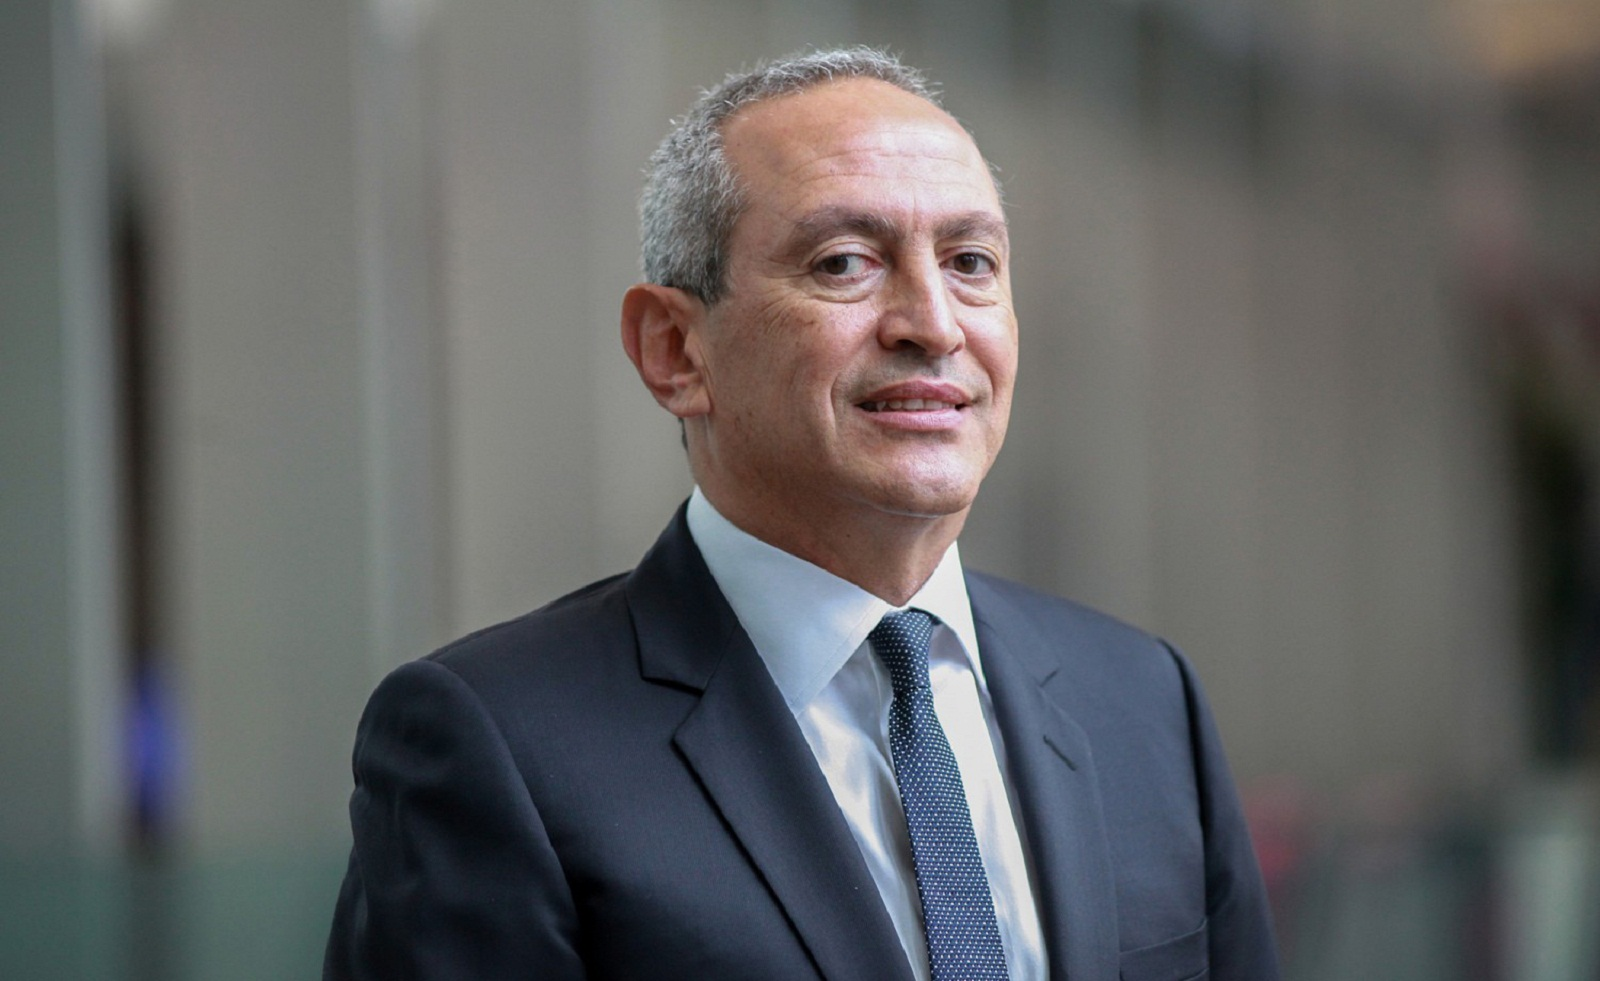 The Egyptian billionaire founder of Orascom Telecom Holding Naguib Sawiris made the growth of oil prices up to $100 in 18 months. The businessman told about it on May 6 in an interview with CNBC.